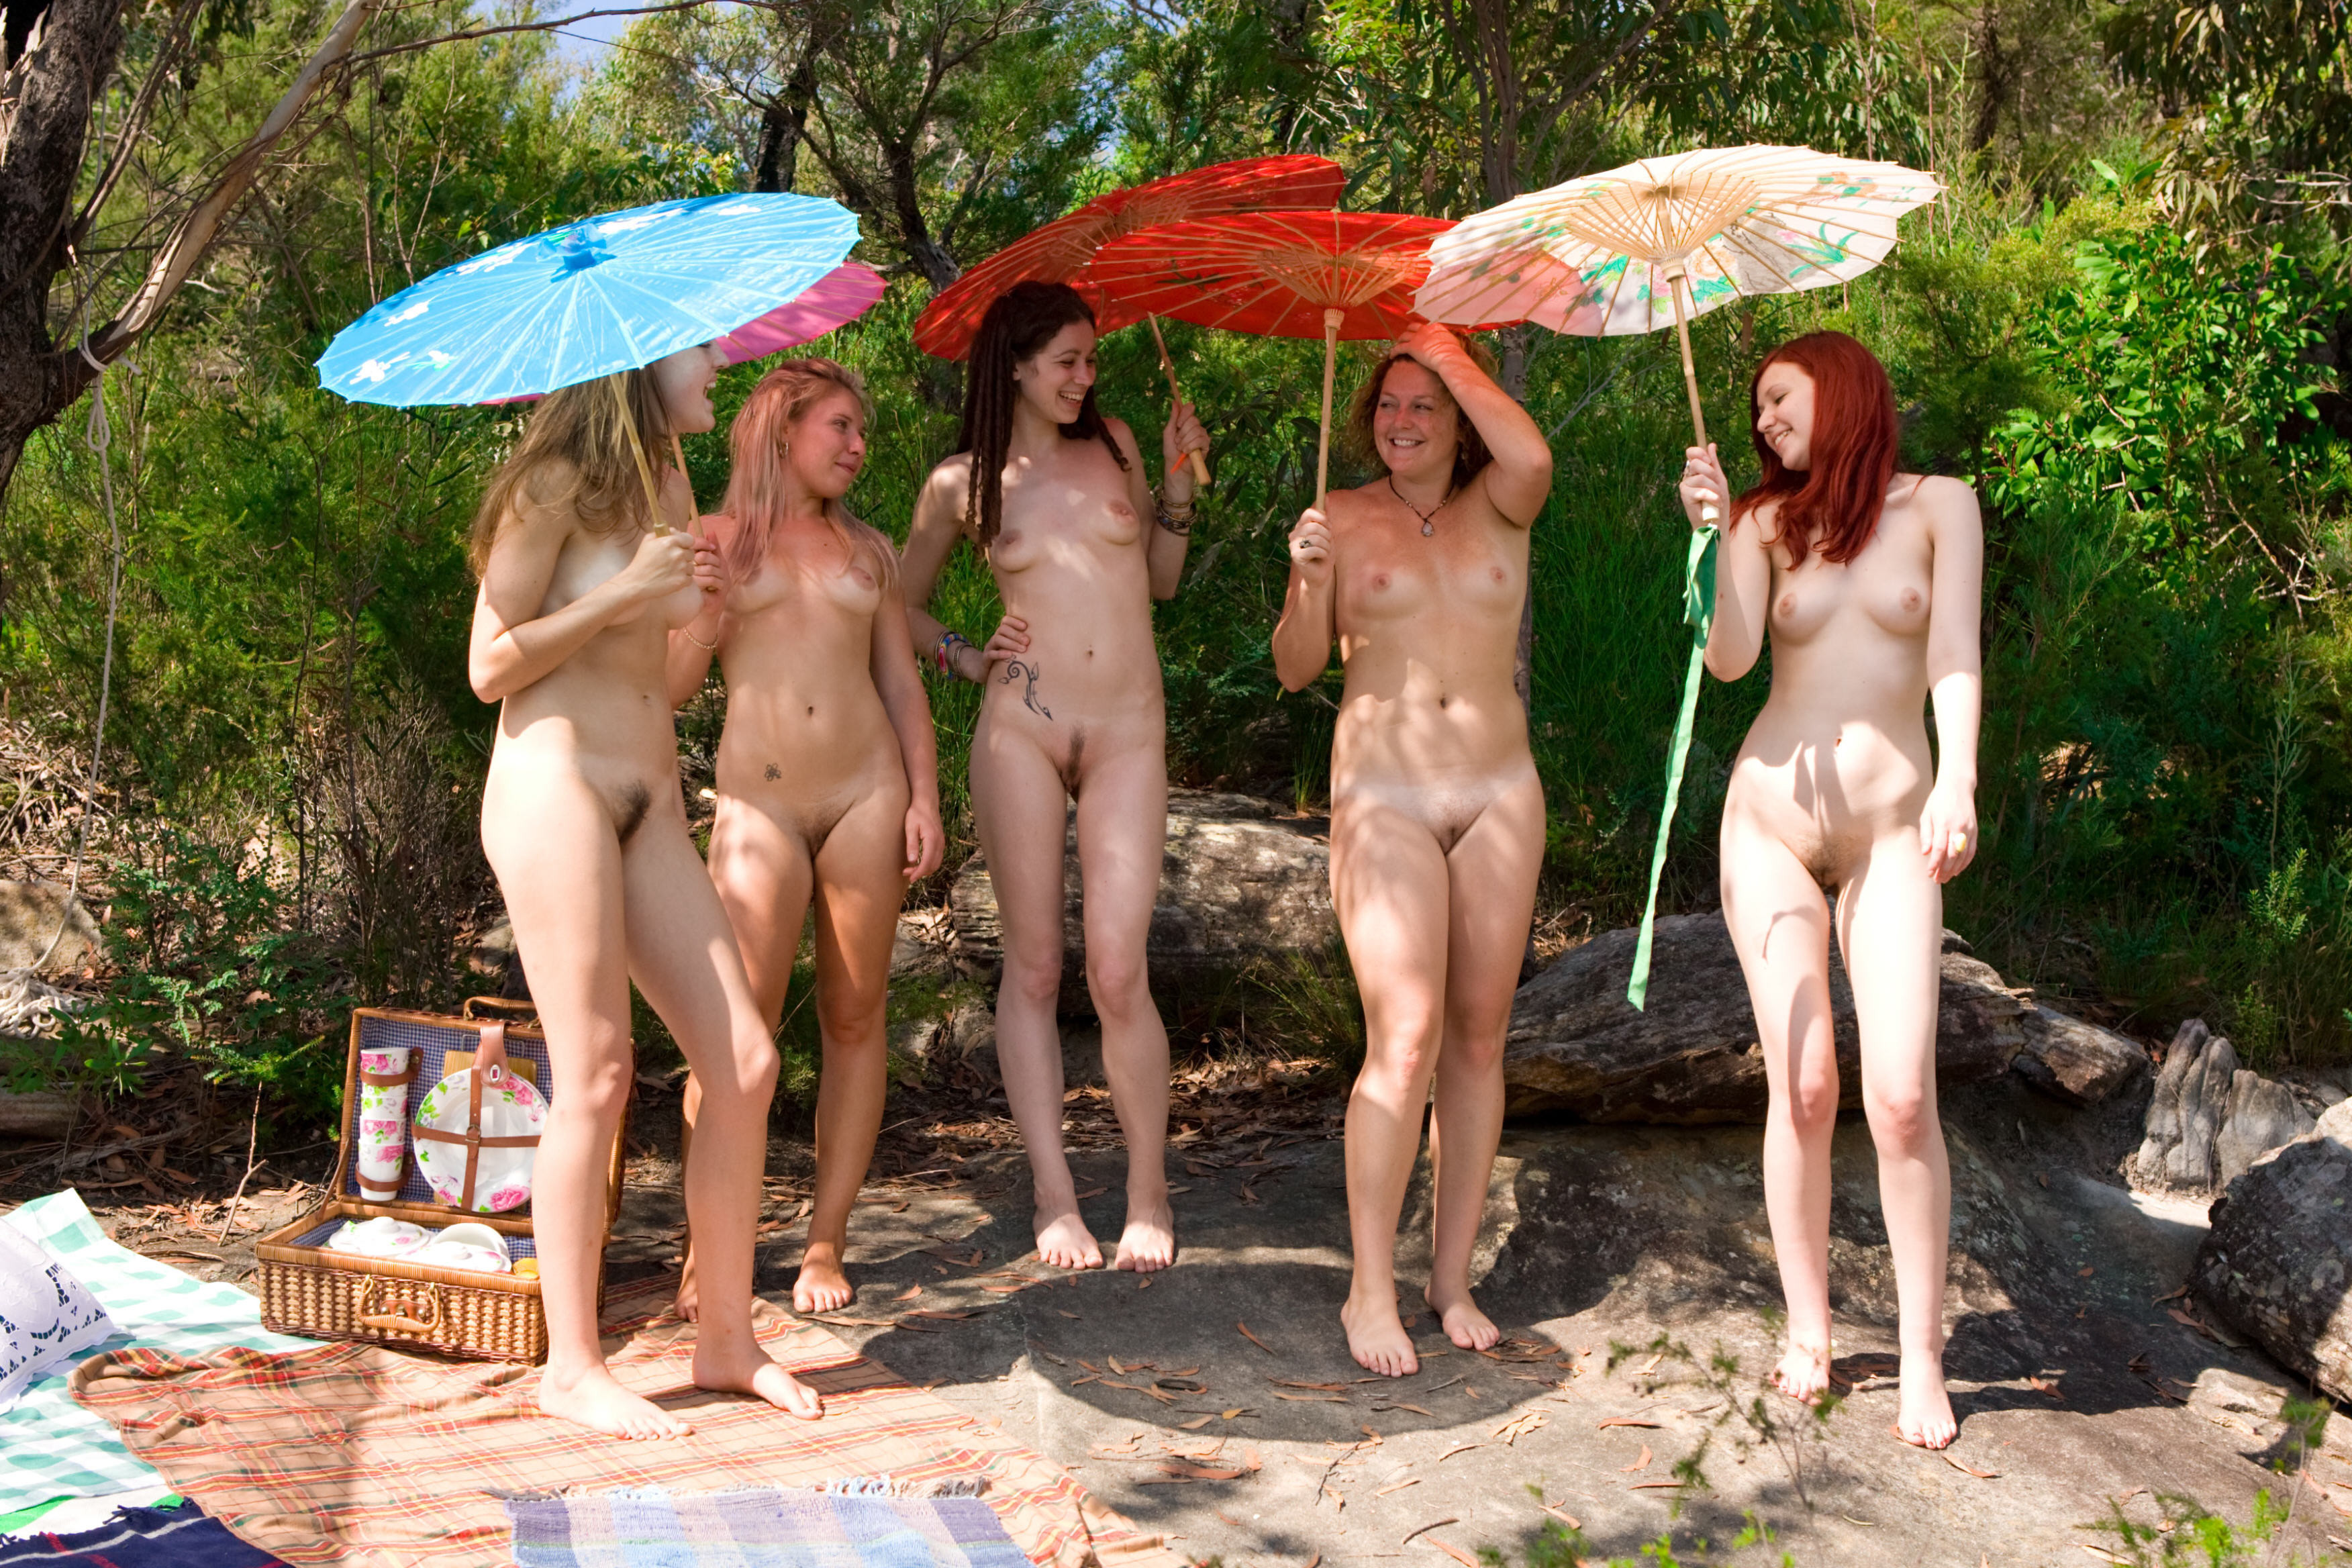 naked-girls-in-group-mix-vol3-20